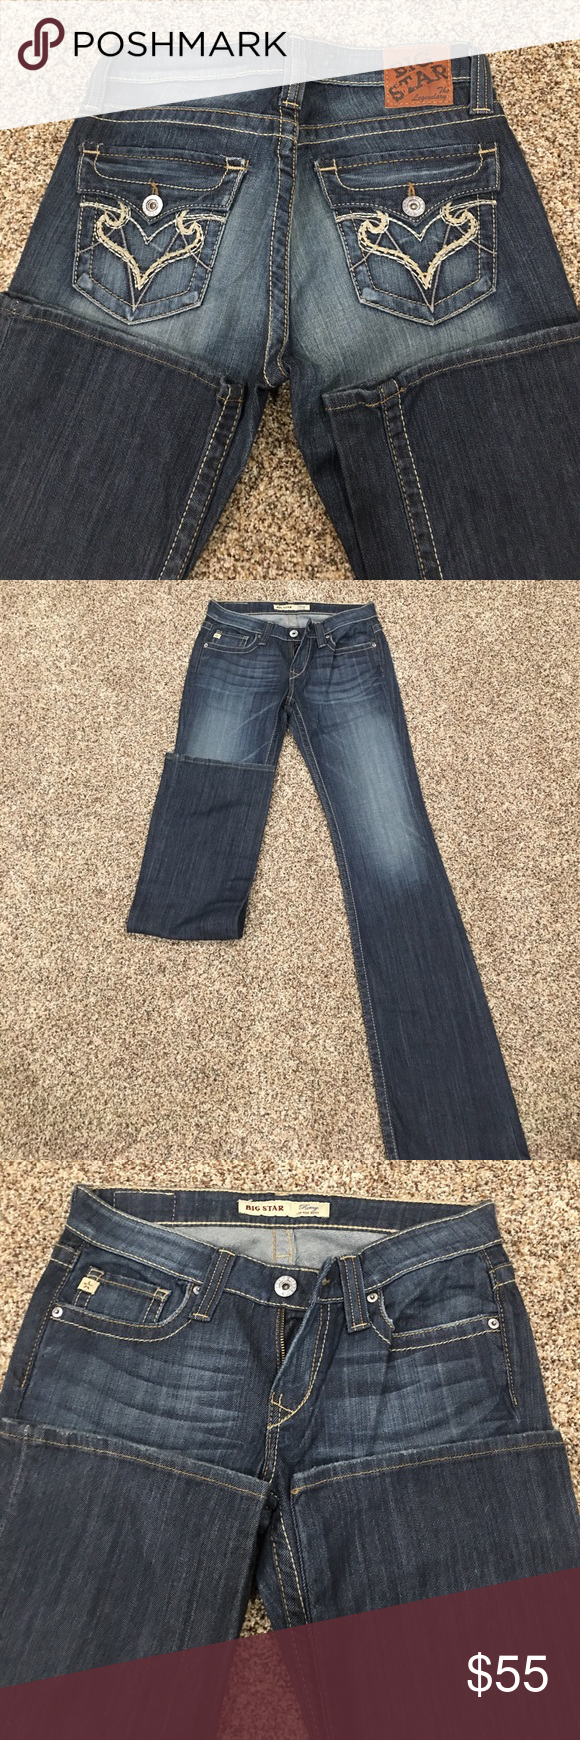 Big Star Jeans Big Star Jeans size 28L like new condition inseam 36 Big Star Jeans Boot Cut